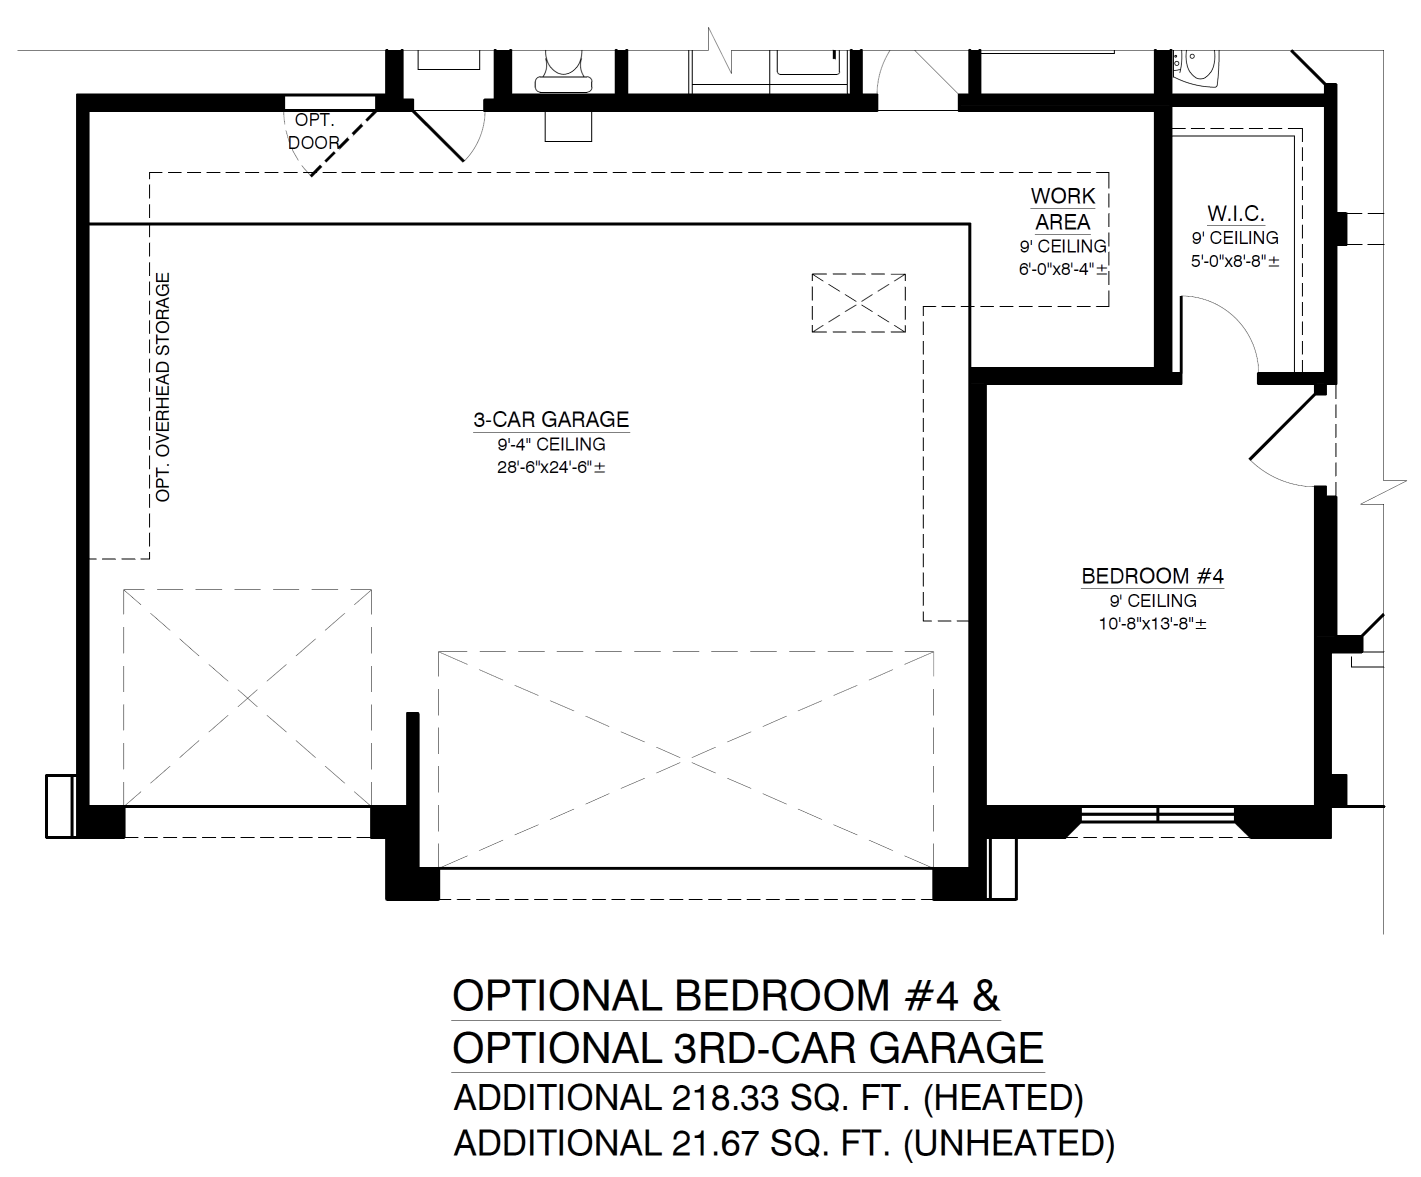 Optional 4th Bedroom and 3rd Garage